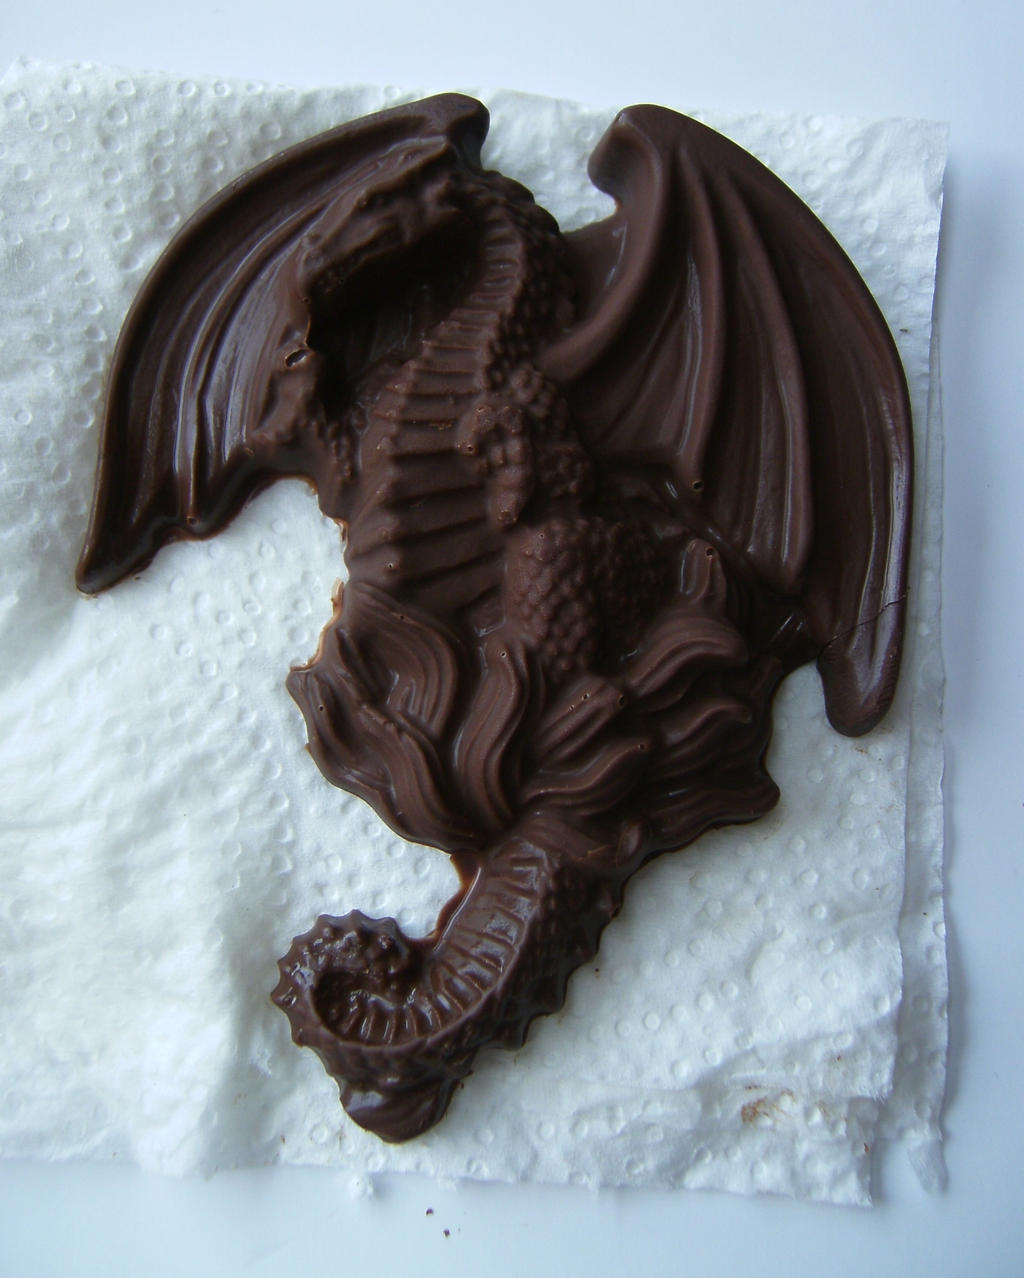 Flying Chocolate Dragon By Draelen On Deviantart